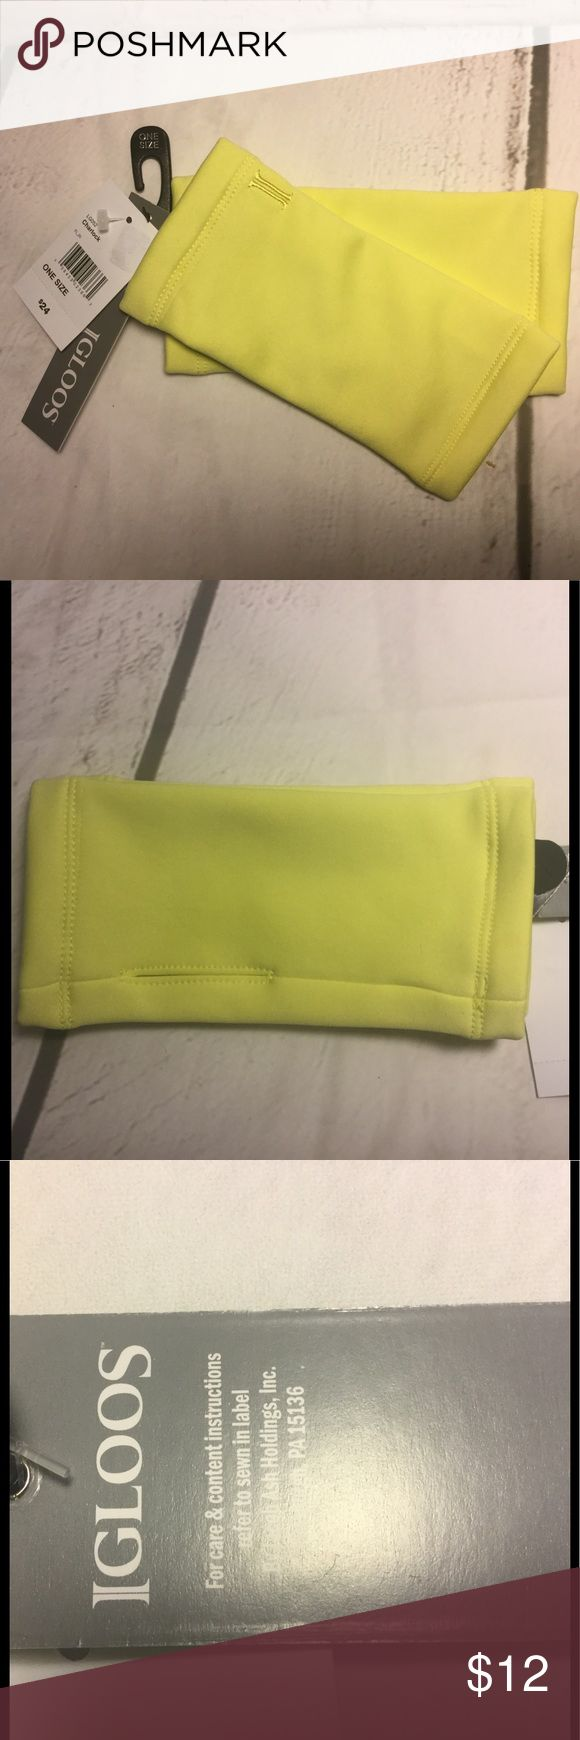 Hand warmers NWT 🆕 Igloos yellow thumb insert These are brand new with tags and retails for $24.  Would make an excellent gift 🎁. Buy with confidence I am a top rated seller, mentor and fast shipper.  Don't forget to bundle and save.  Thank you. Igloos Accessories Gloves & Mittens